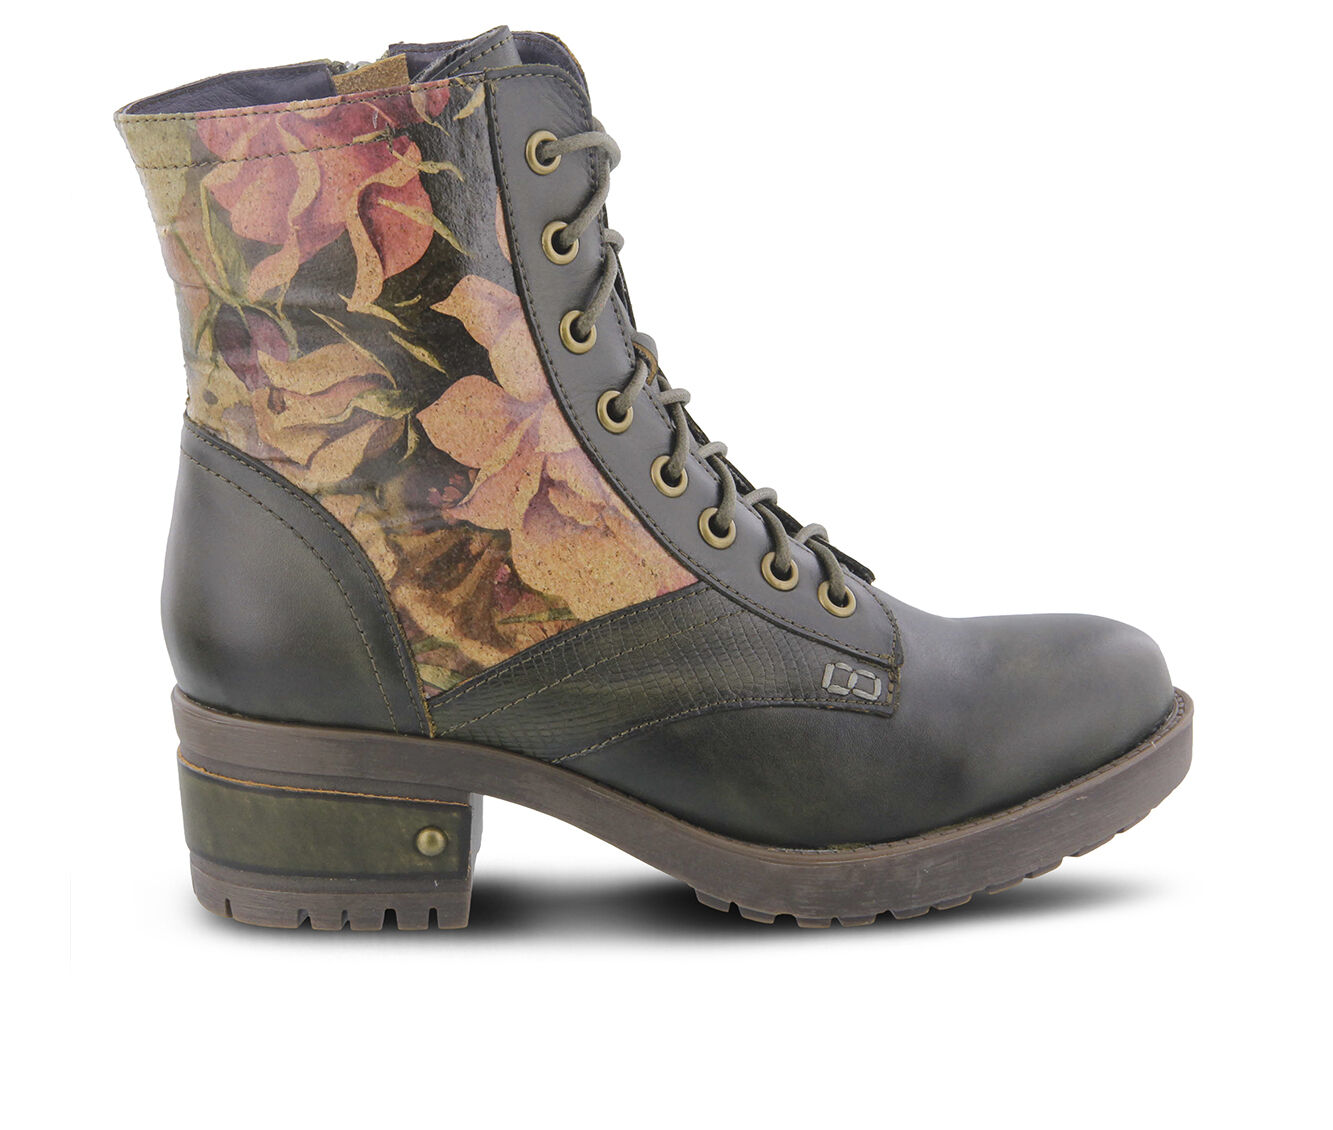 Women's L'ARTISTE Marty Hiking Boots Olive Green